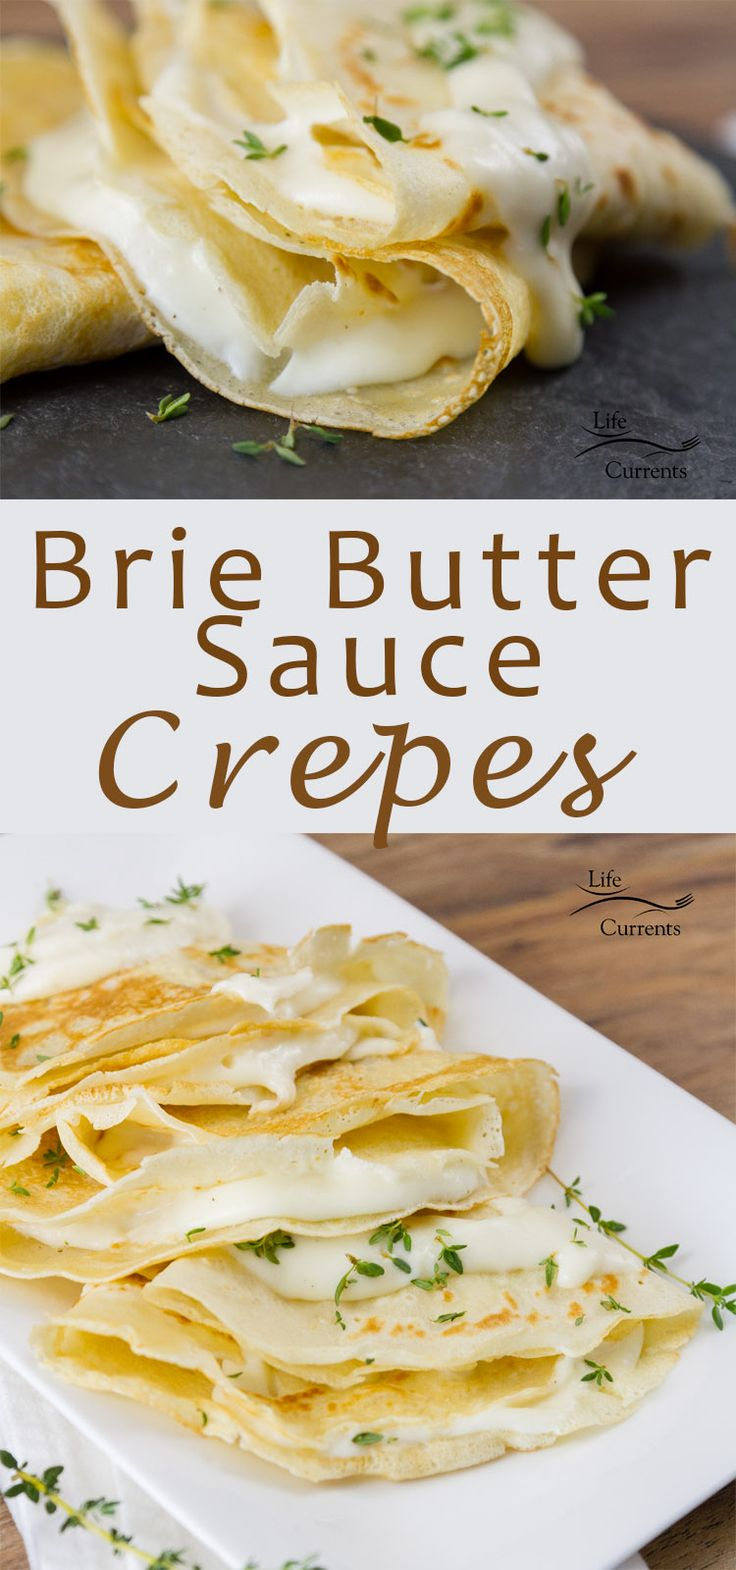 Brie Butter Sauce Crepes - The best of French cuisine made at home #ad #madeinFrance